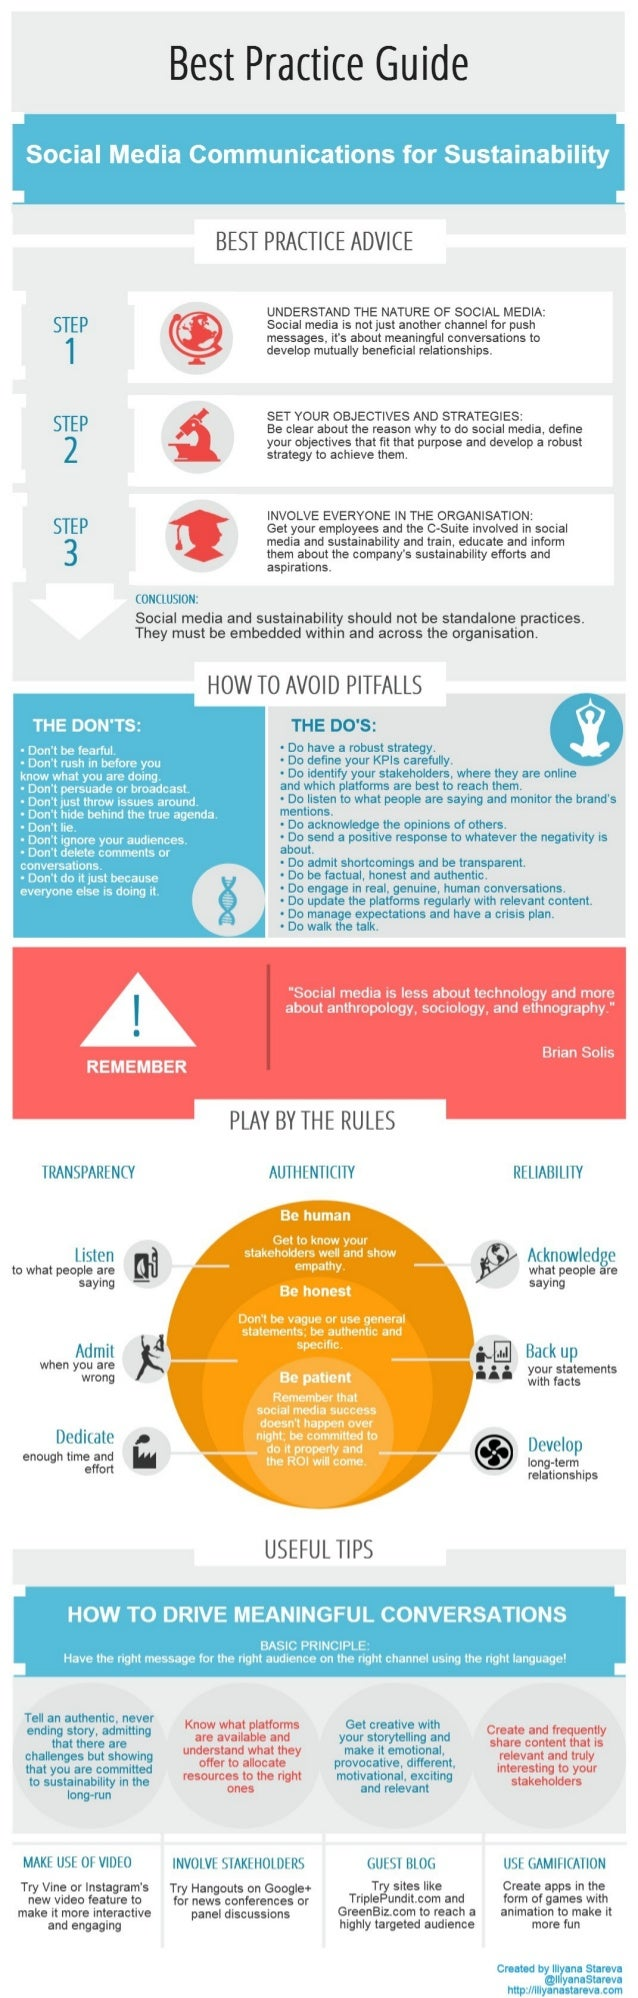 Social Media for Sustainability Communications Best Practice Guide Infographic